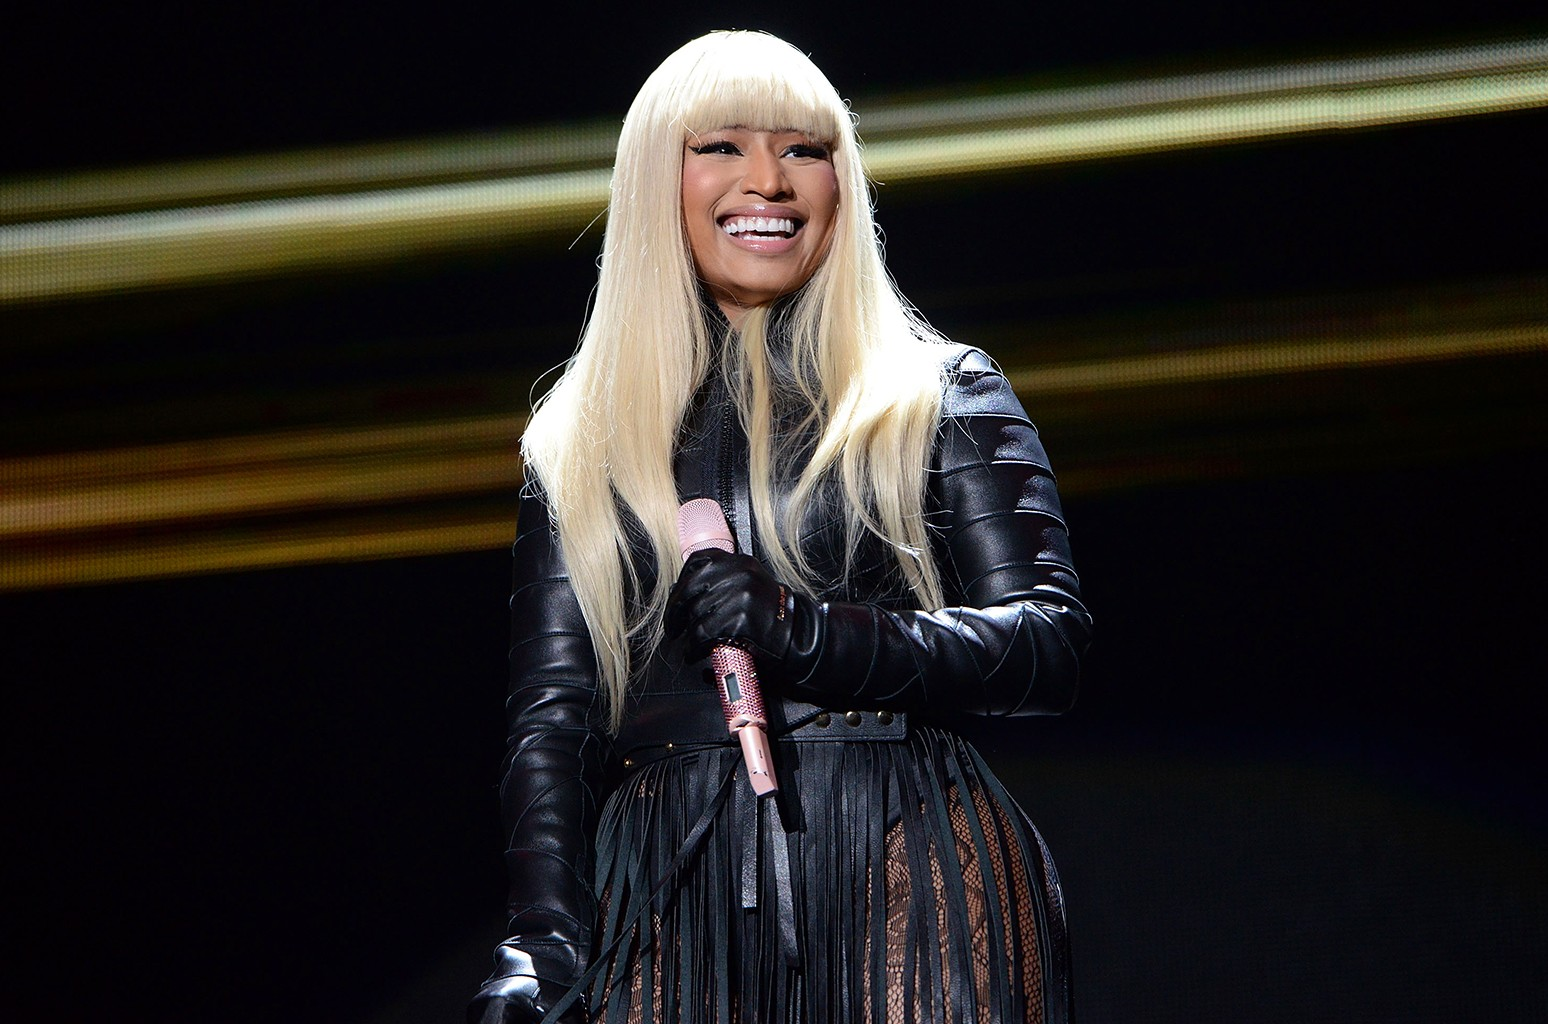 Nicki Minaj performs at The Forum